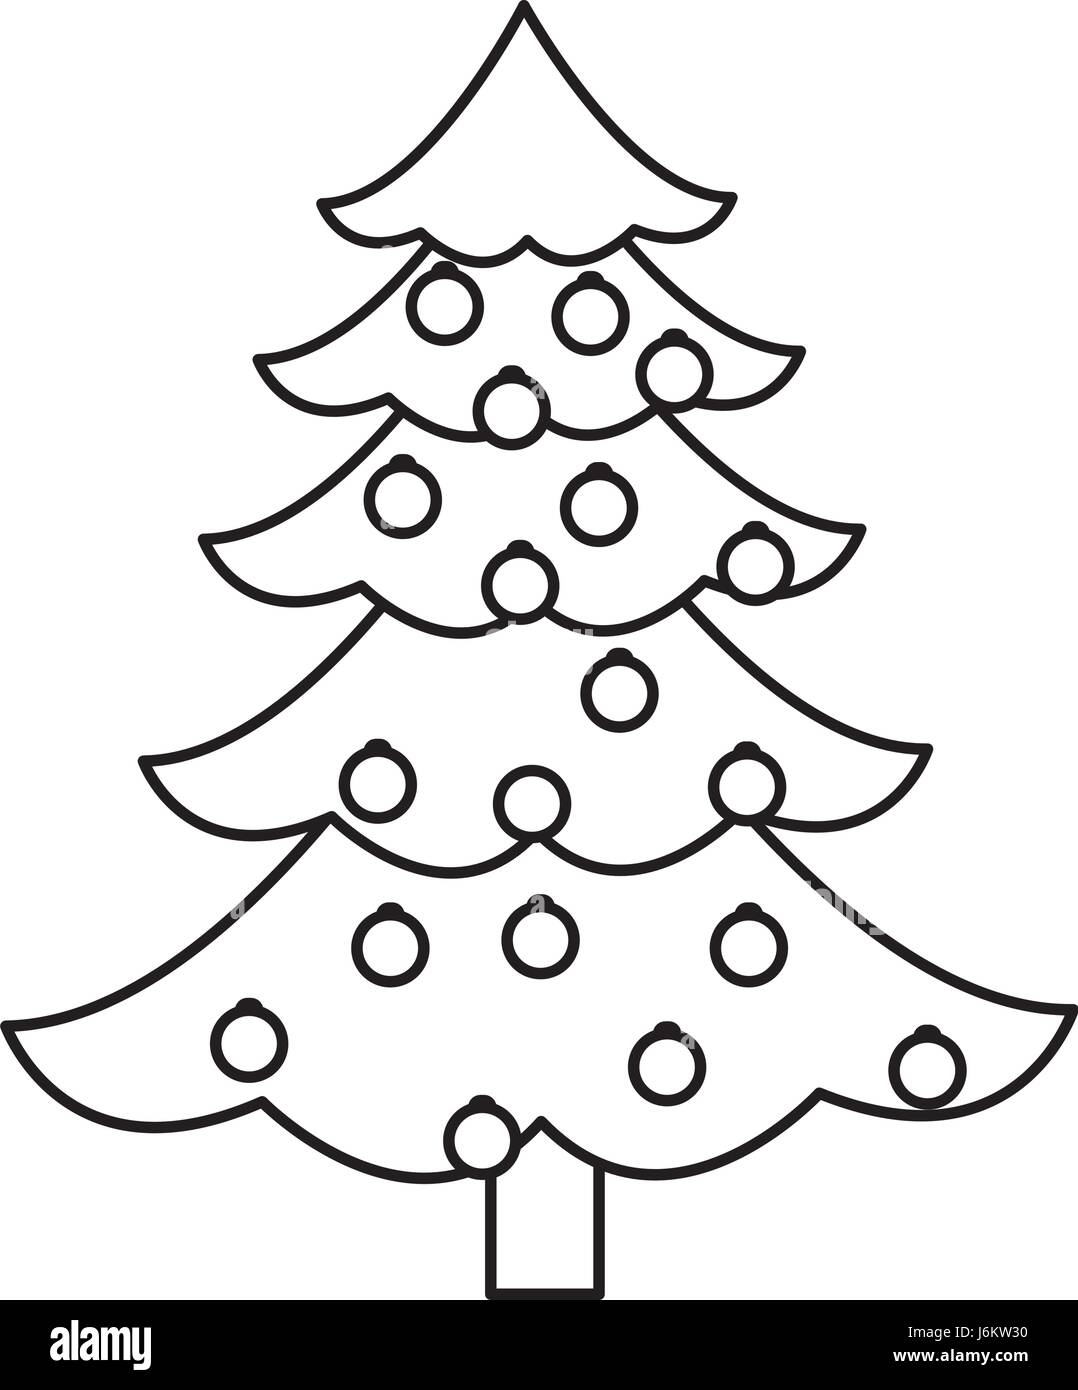 Christmas Tree Pine Decoration Balls Outline Stock Vector